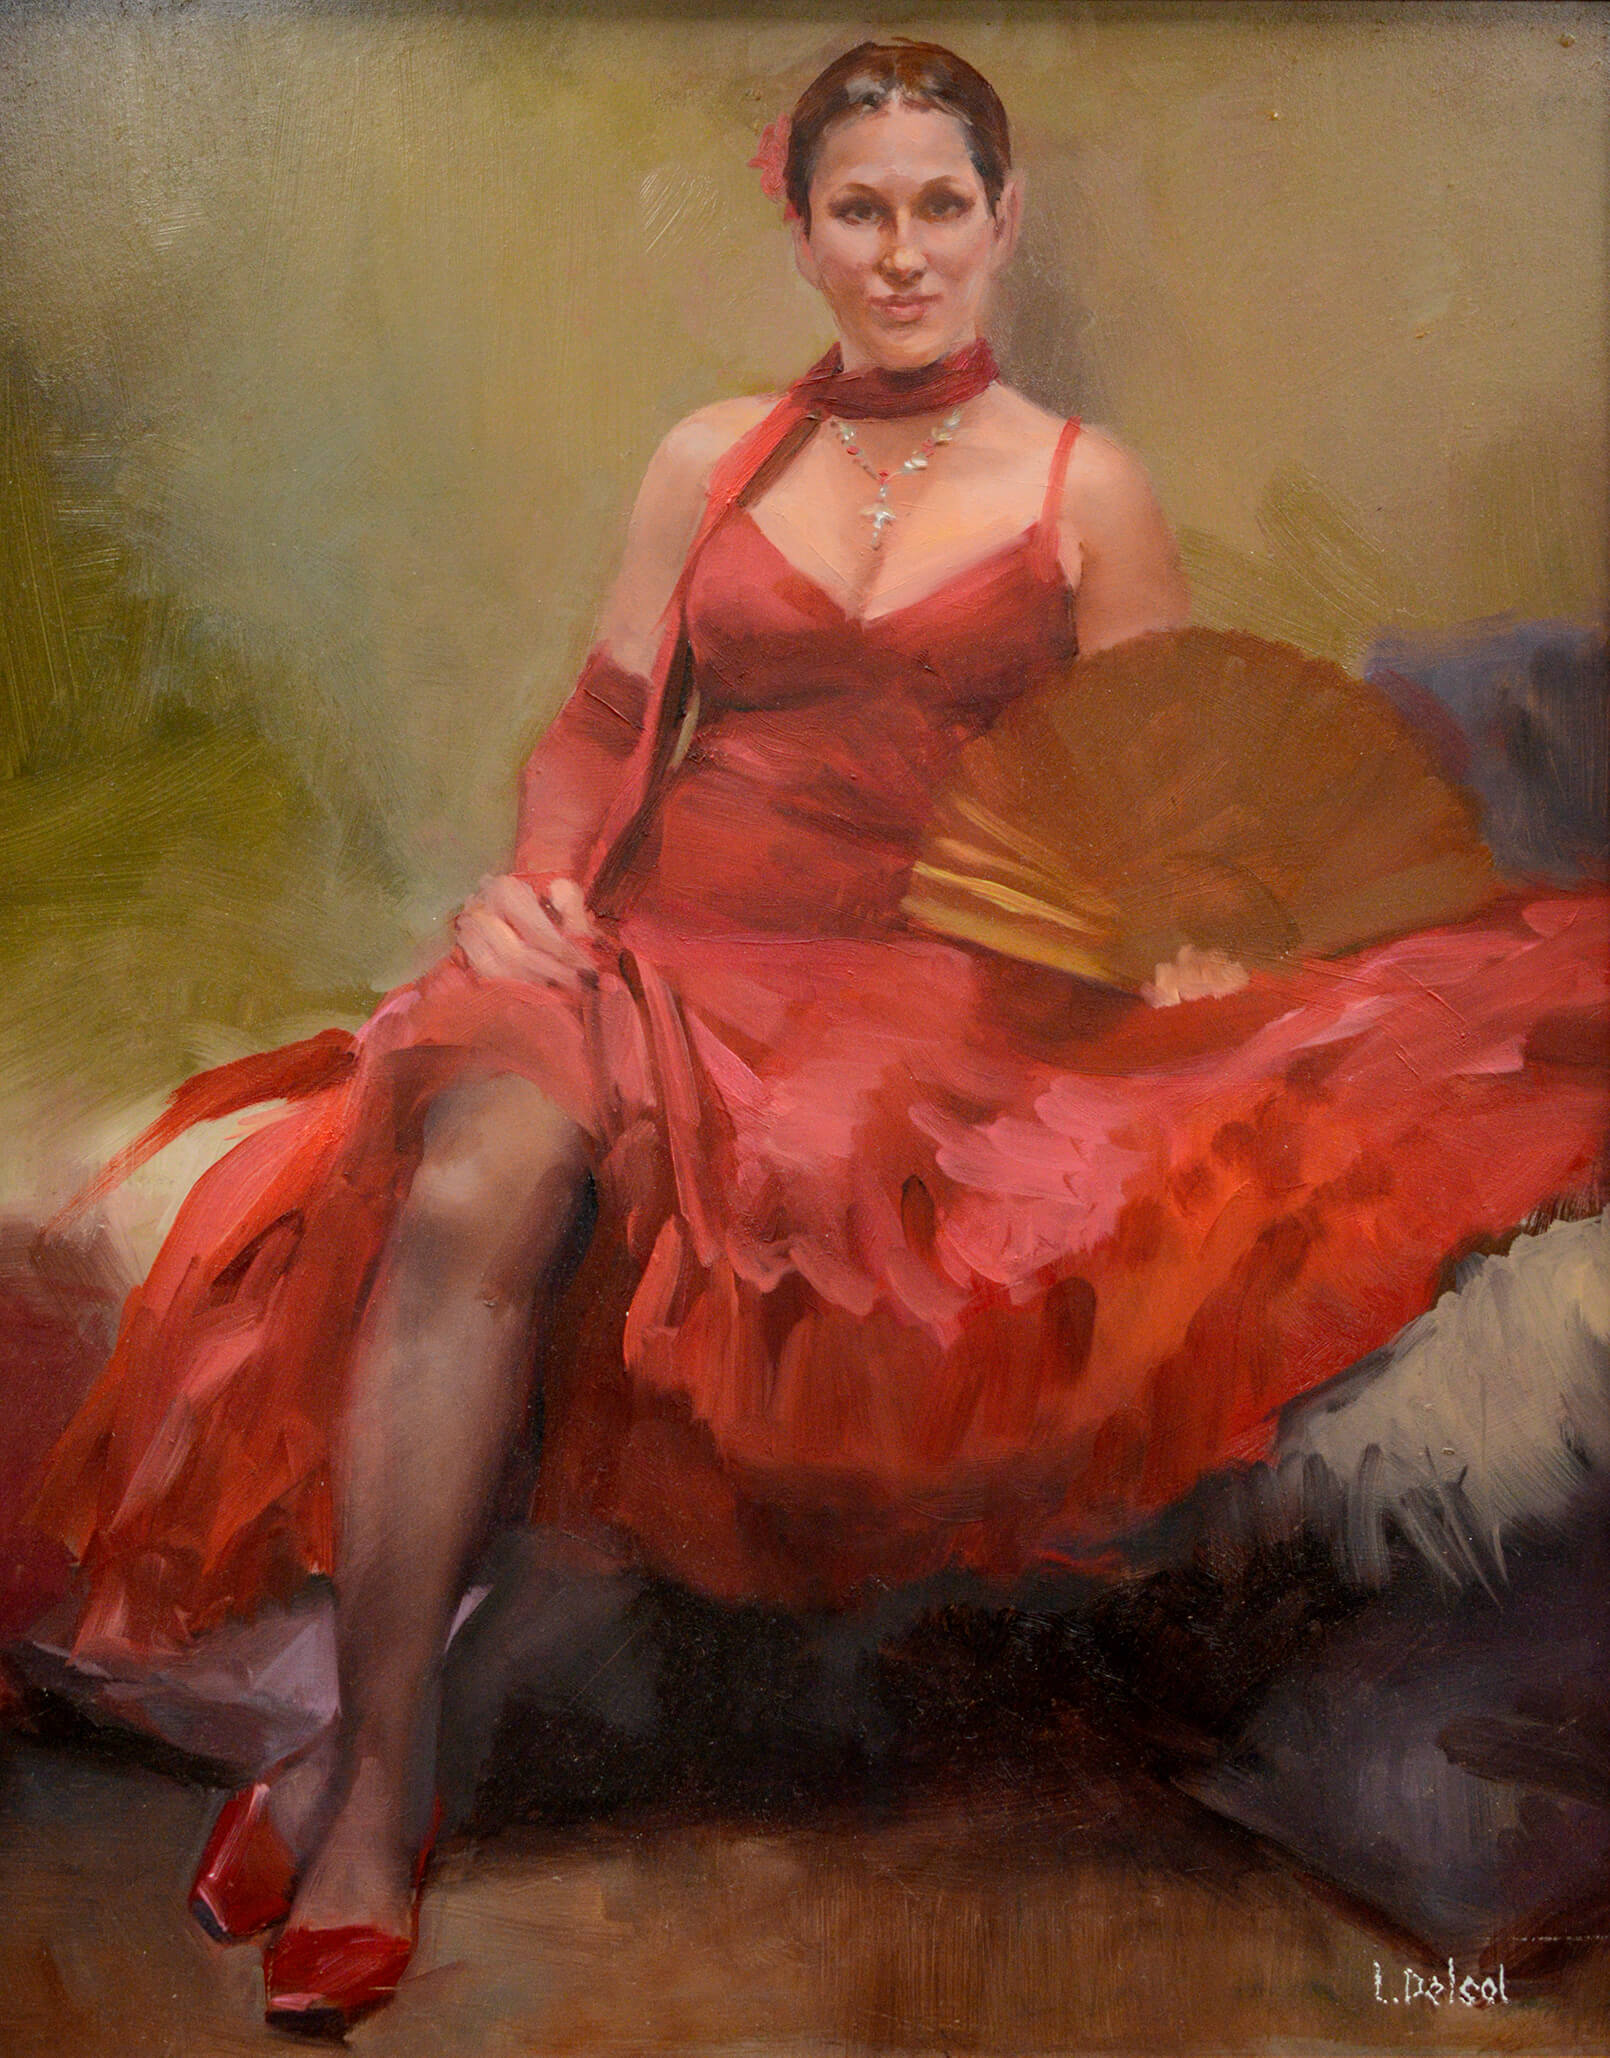 Realistic painting of a resting flamenco dancer in a red dress holding an open fan gazing at us